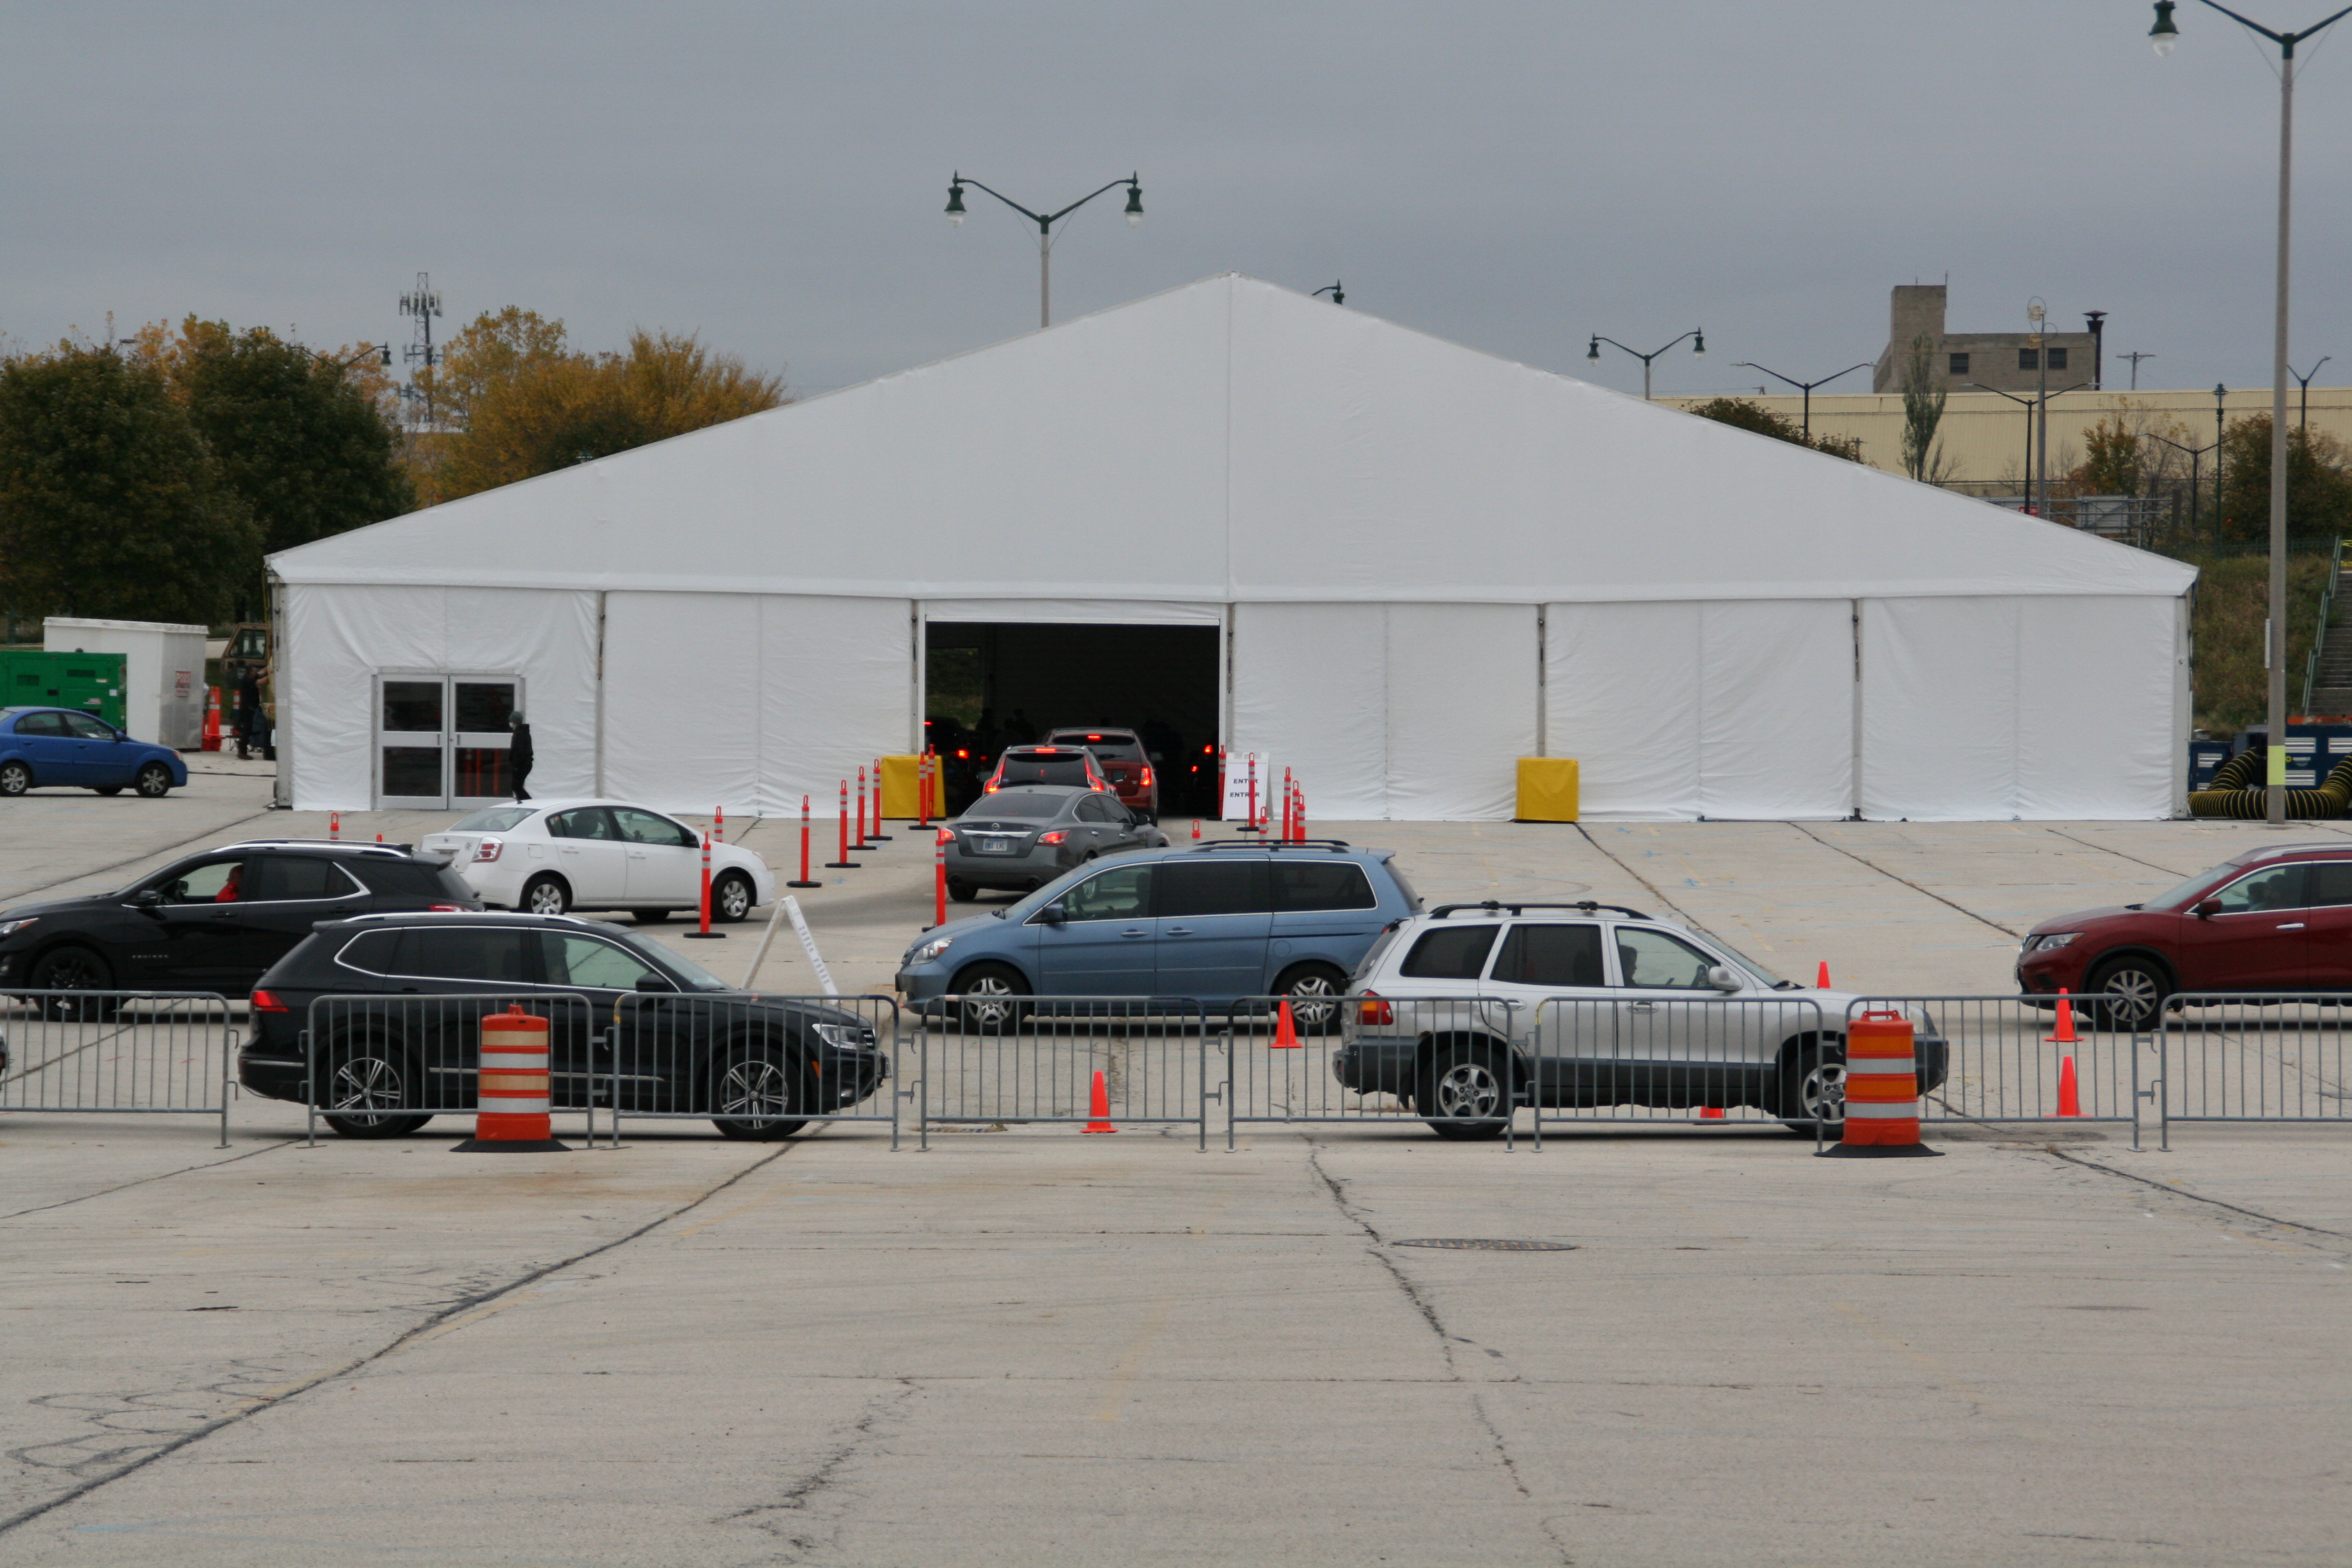 People wait in vehicles to be tested for COVID-19 at Miller Park. Photo by Jeramey Jannene.